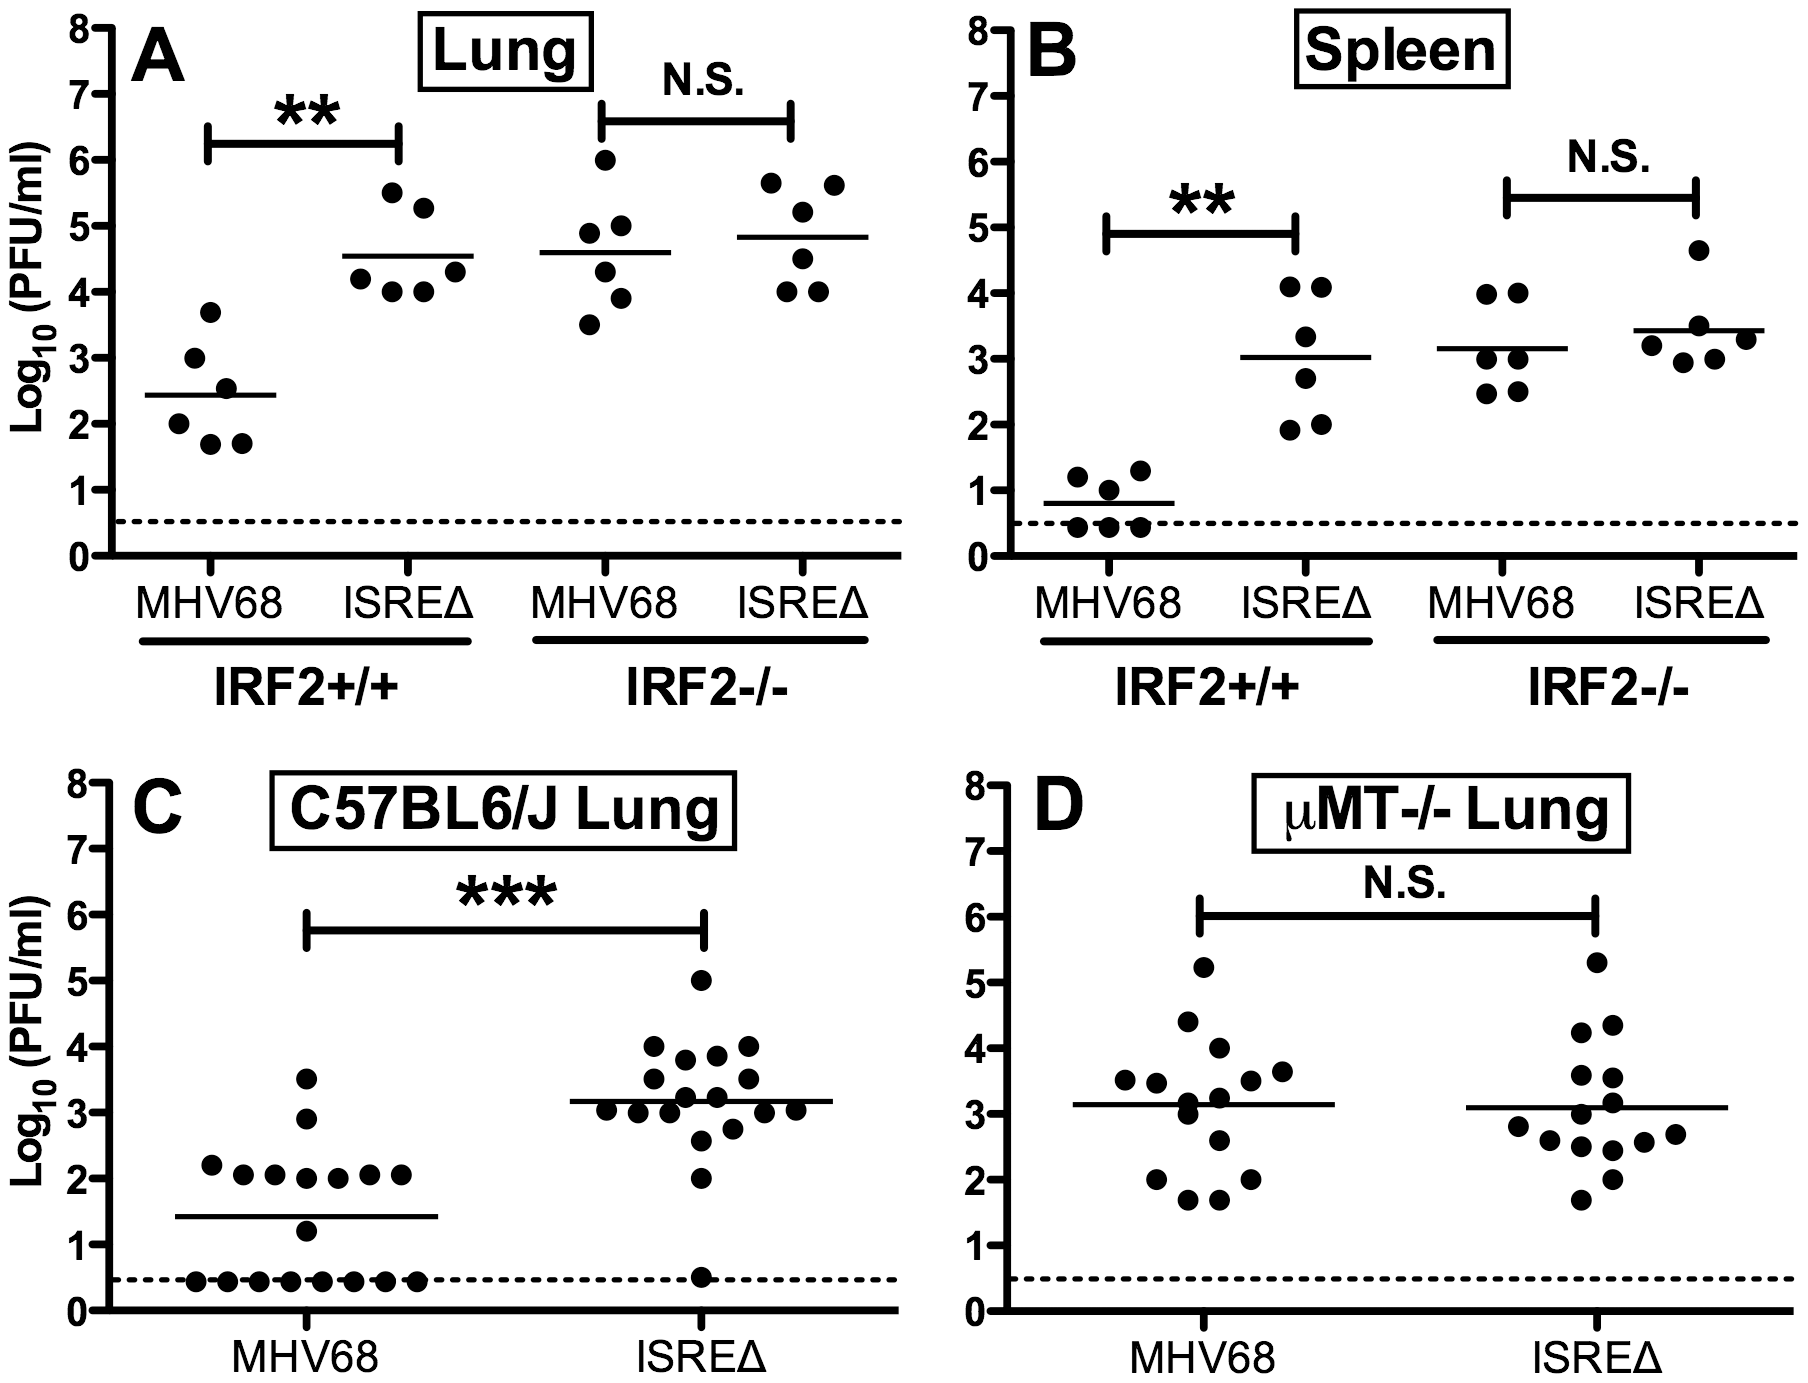 Increased replication of ISREΔ requires IRF2 and B cells.